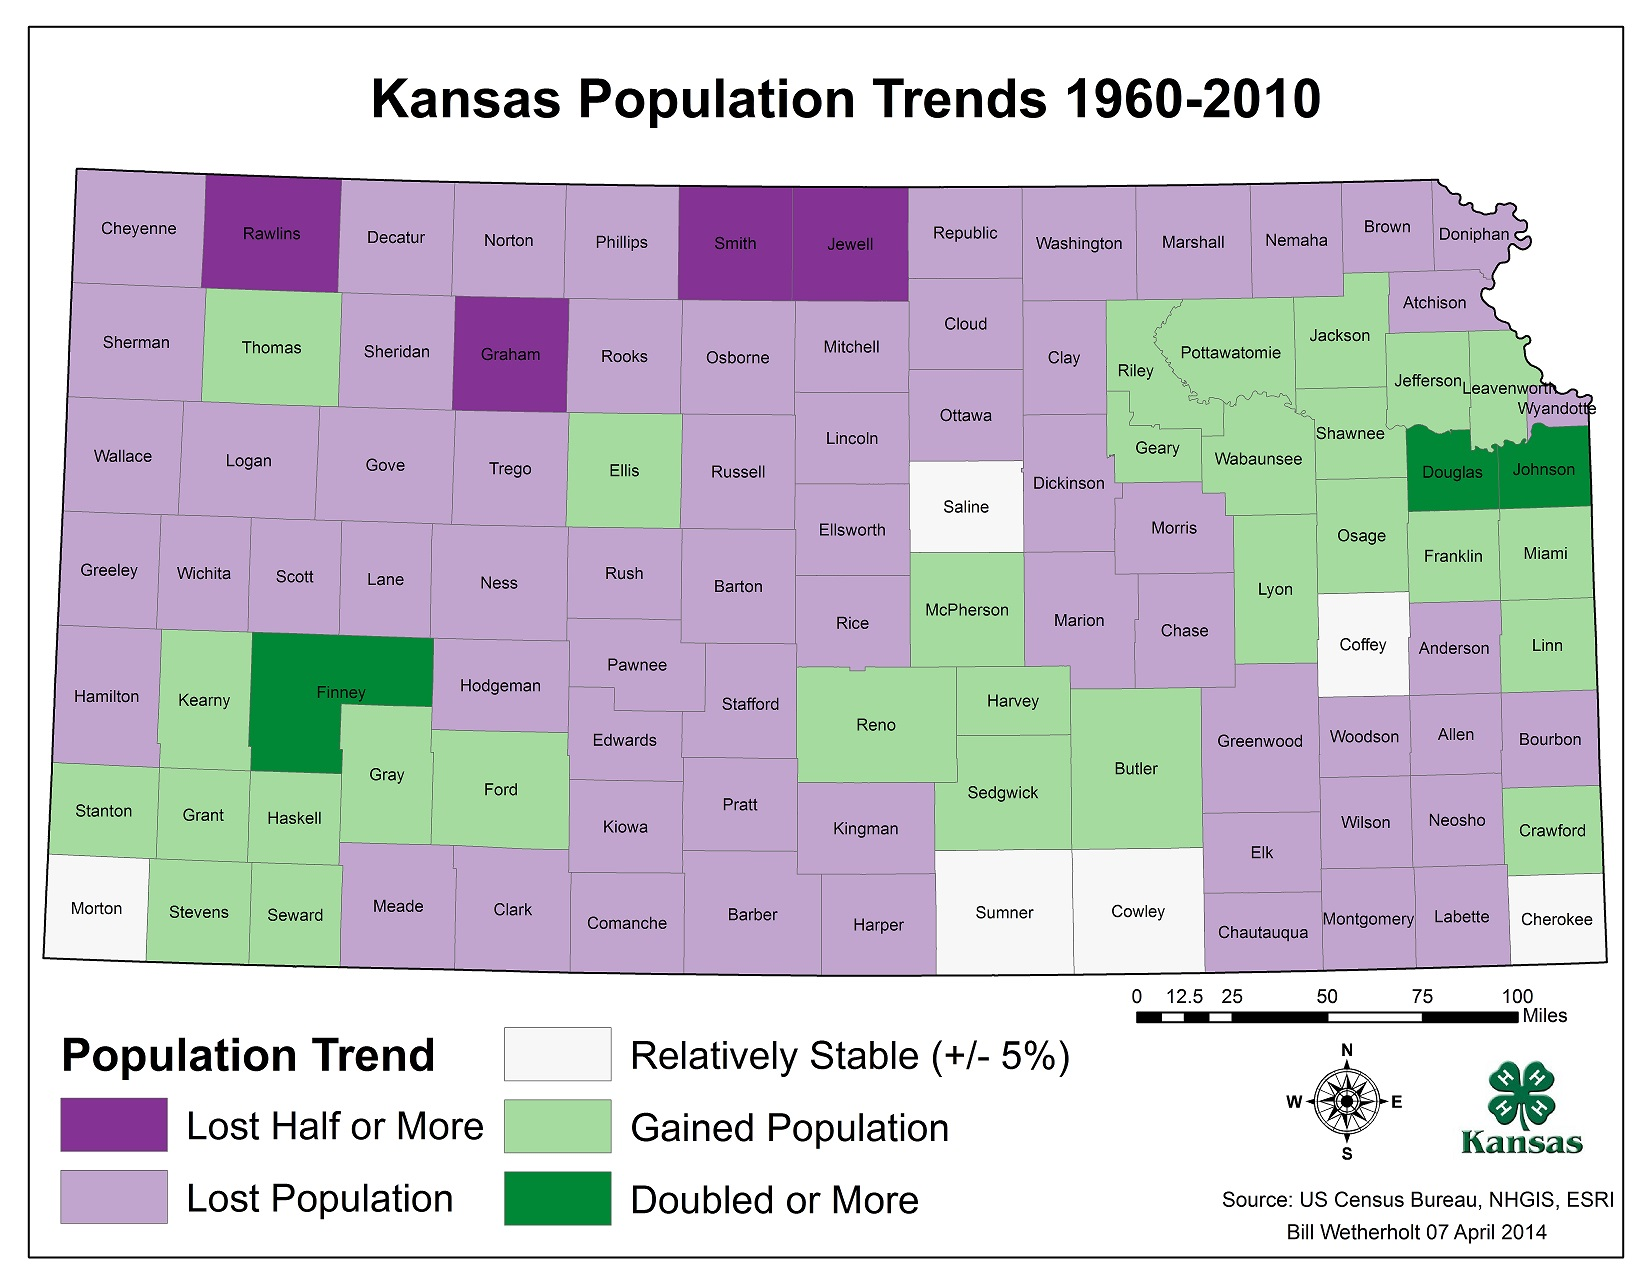 Kansas Population Trends